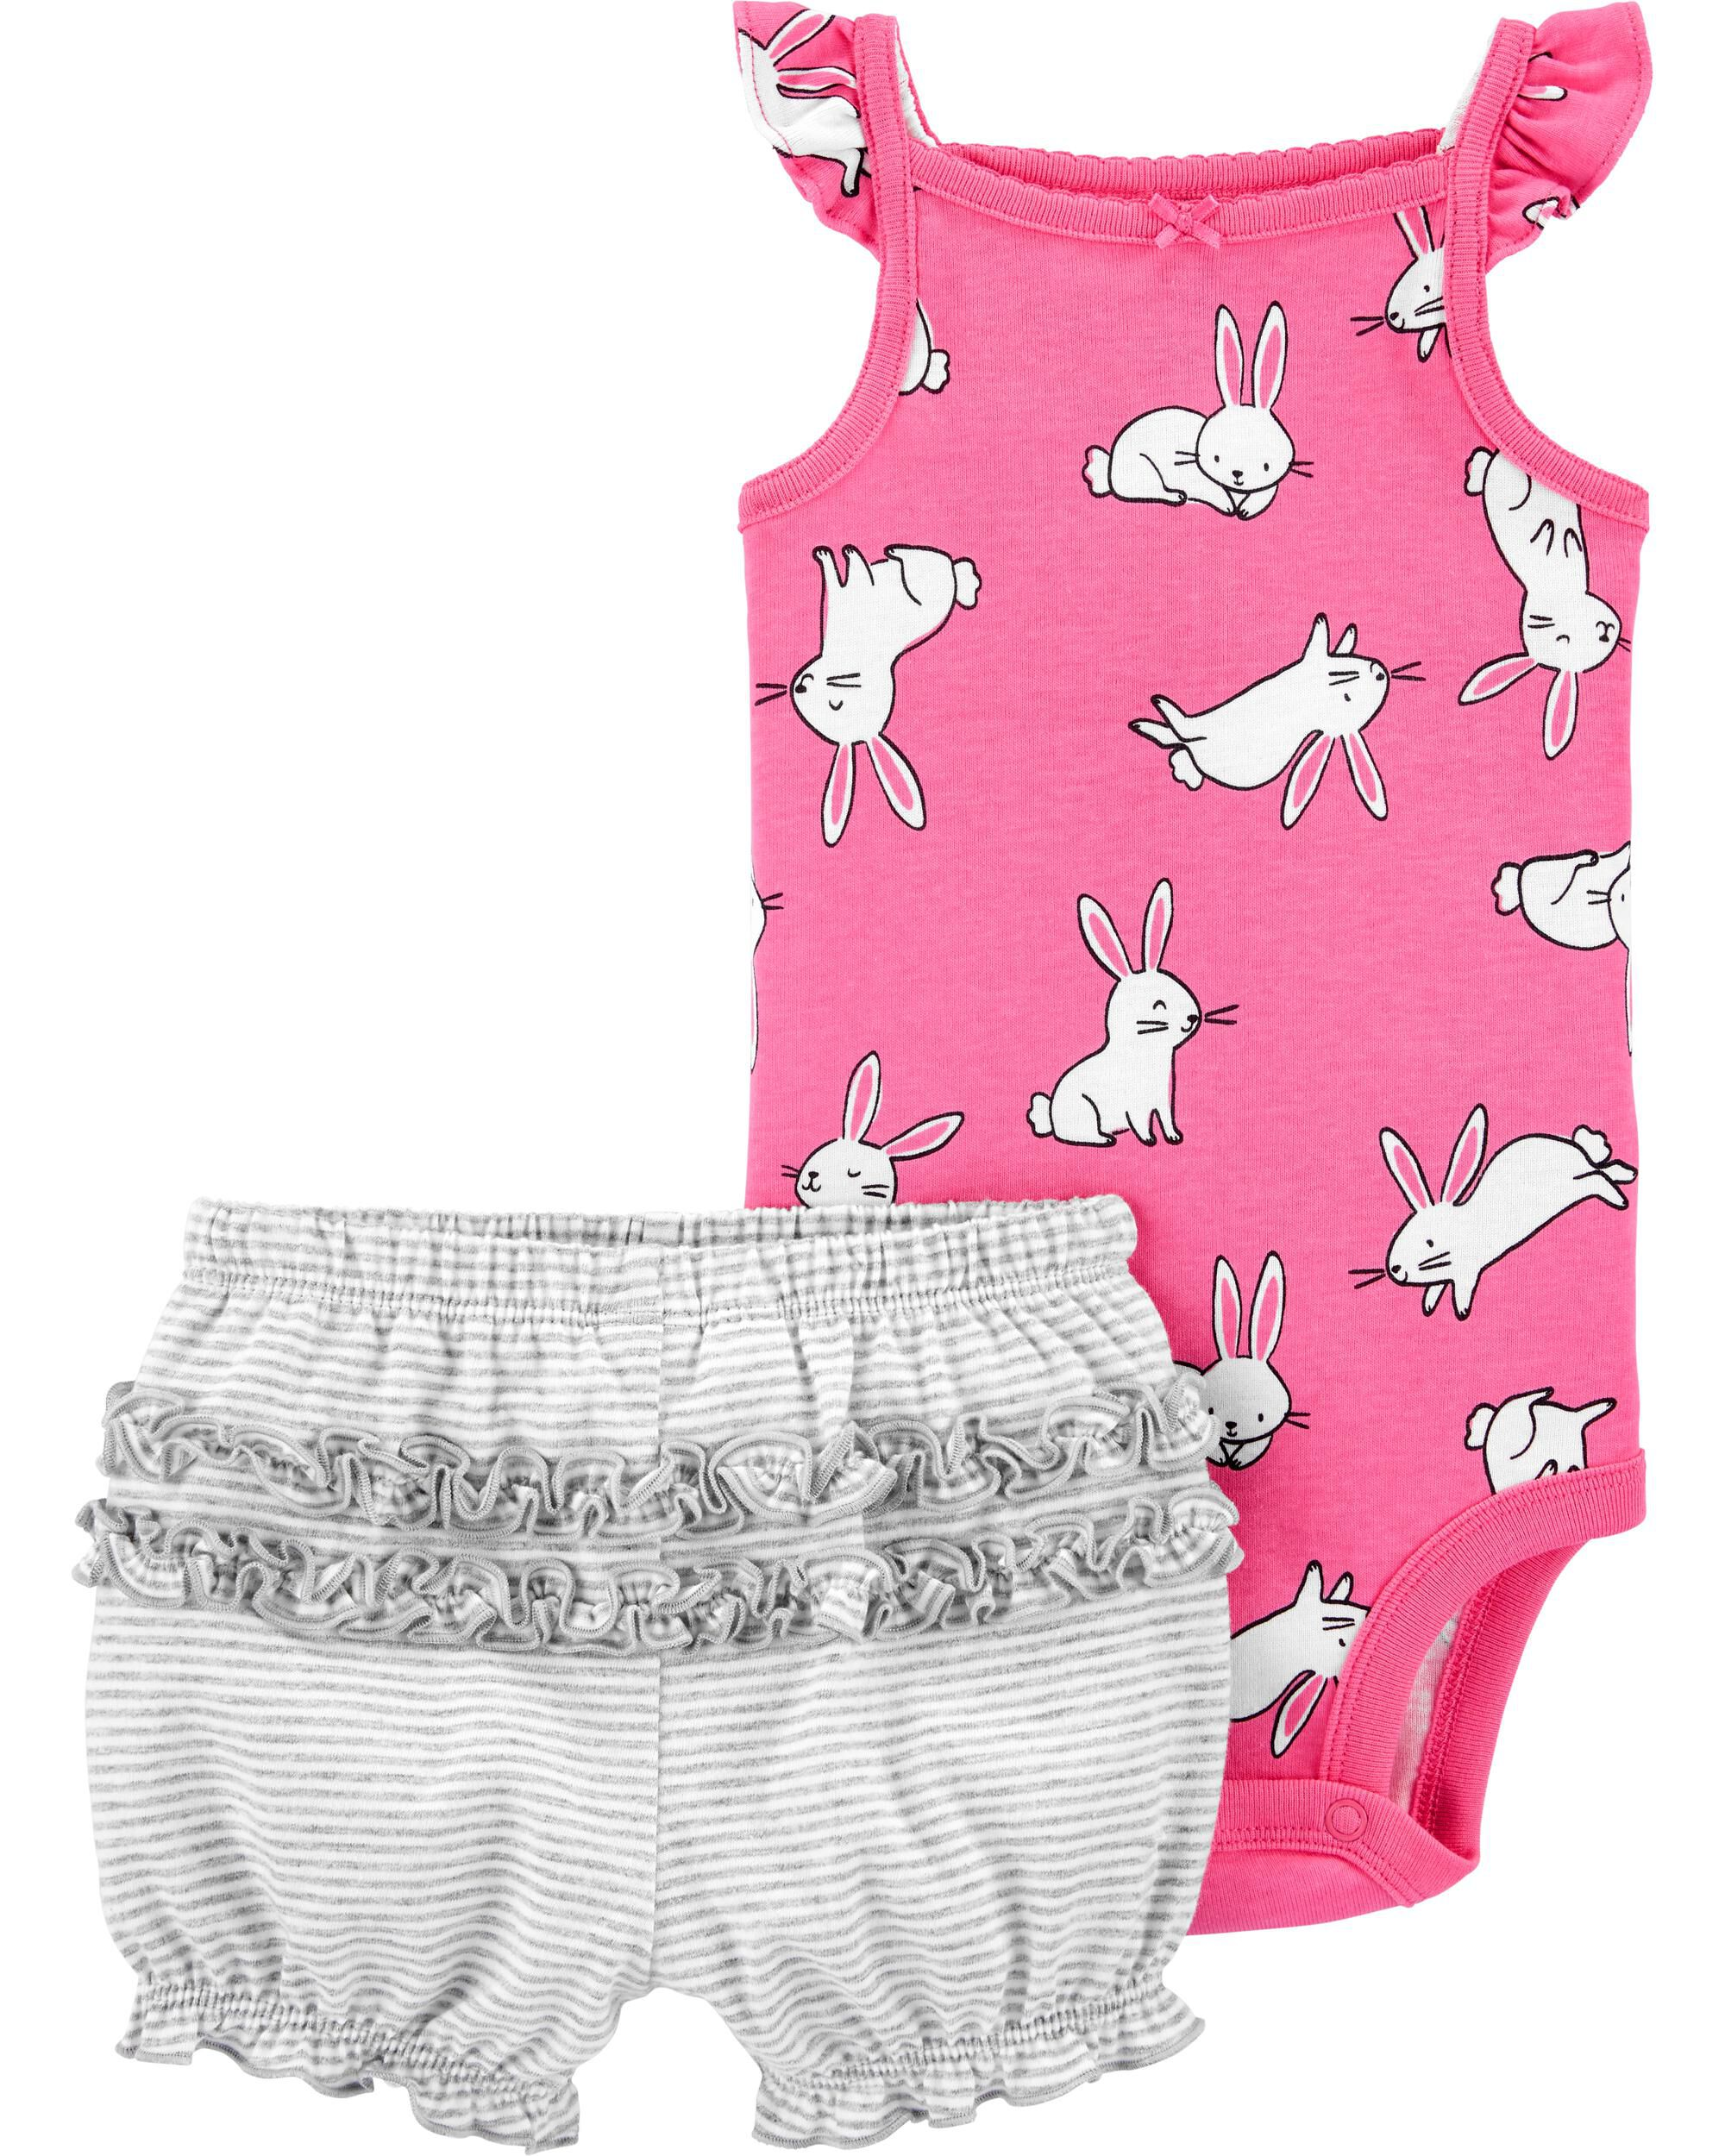 Carters Baby Girls One Piece Pink Checks Print Swimsuit